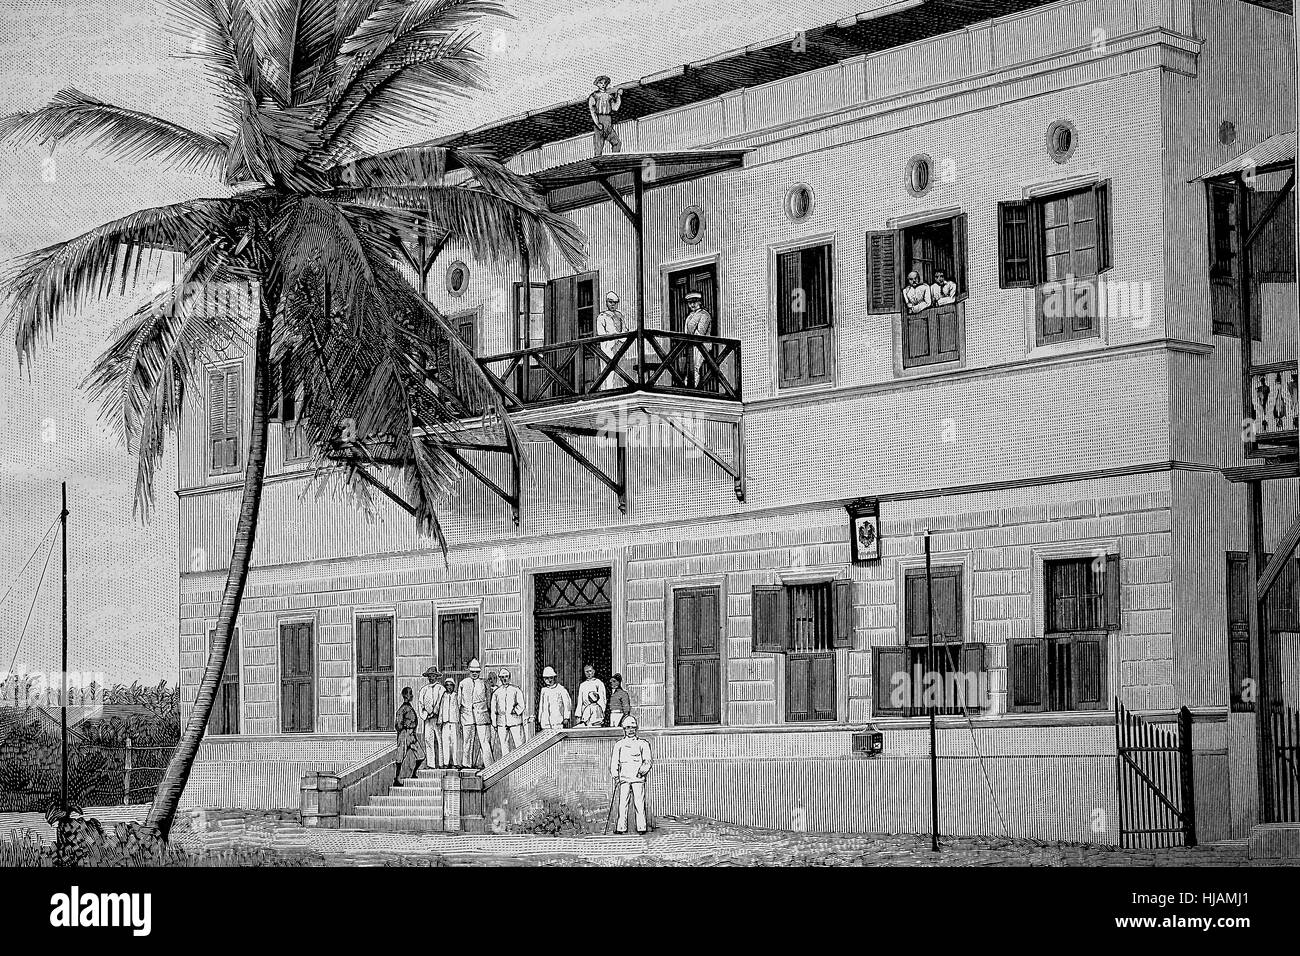 the post office at Dar-es-Salaam, Tanzania, former german east-africa, historical image or illustration from the - Stock Image